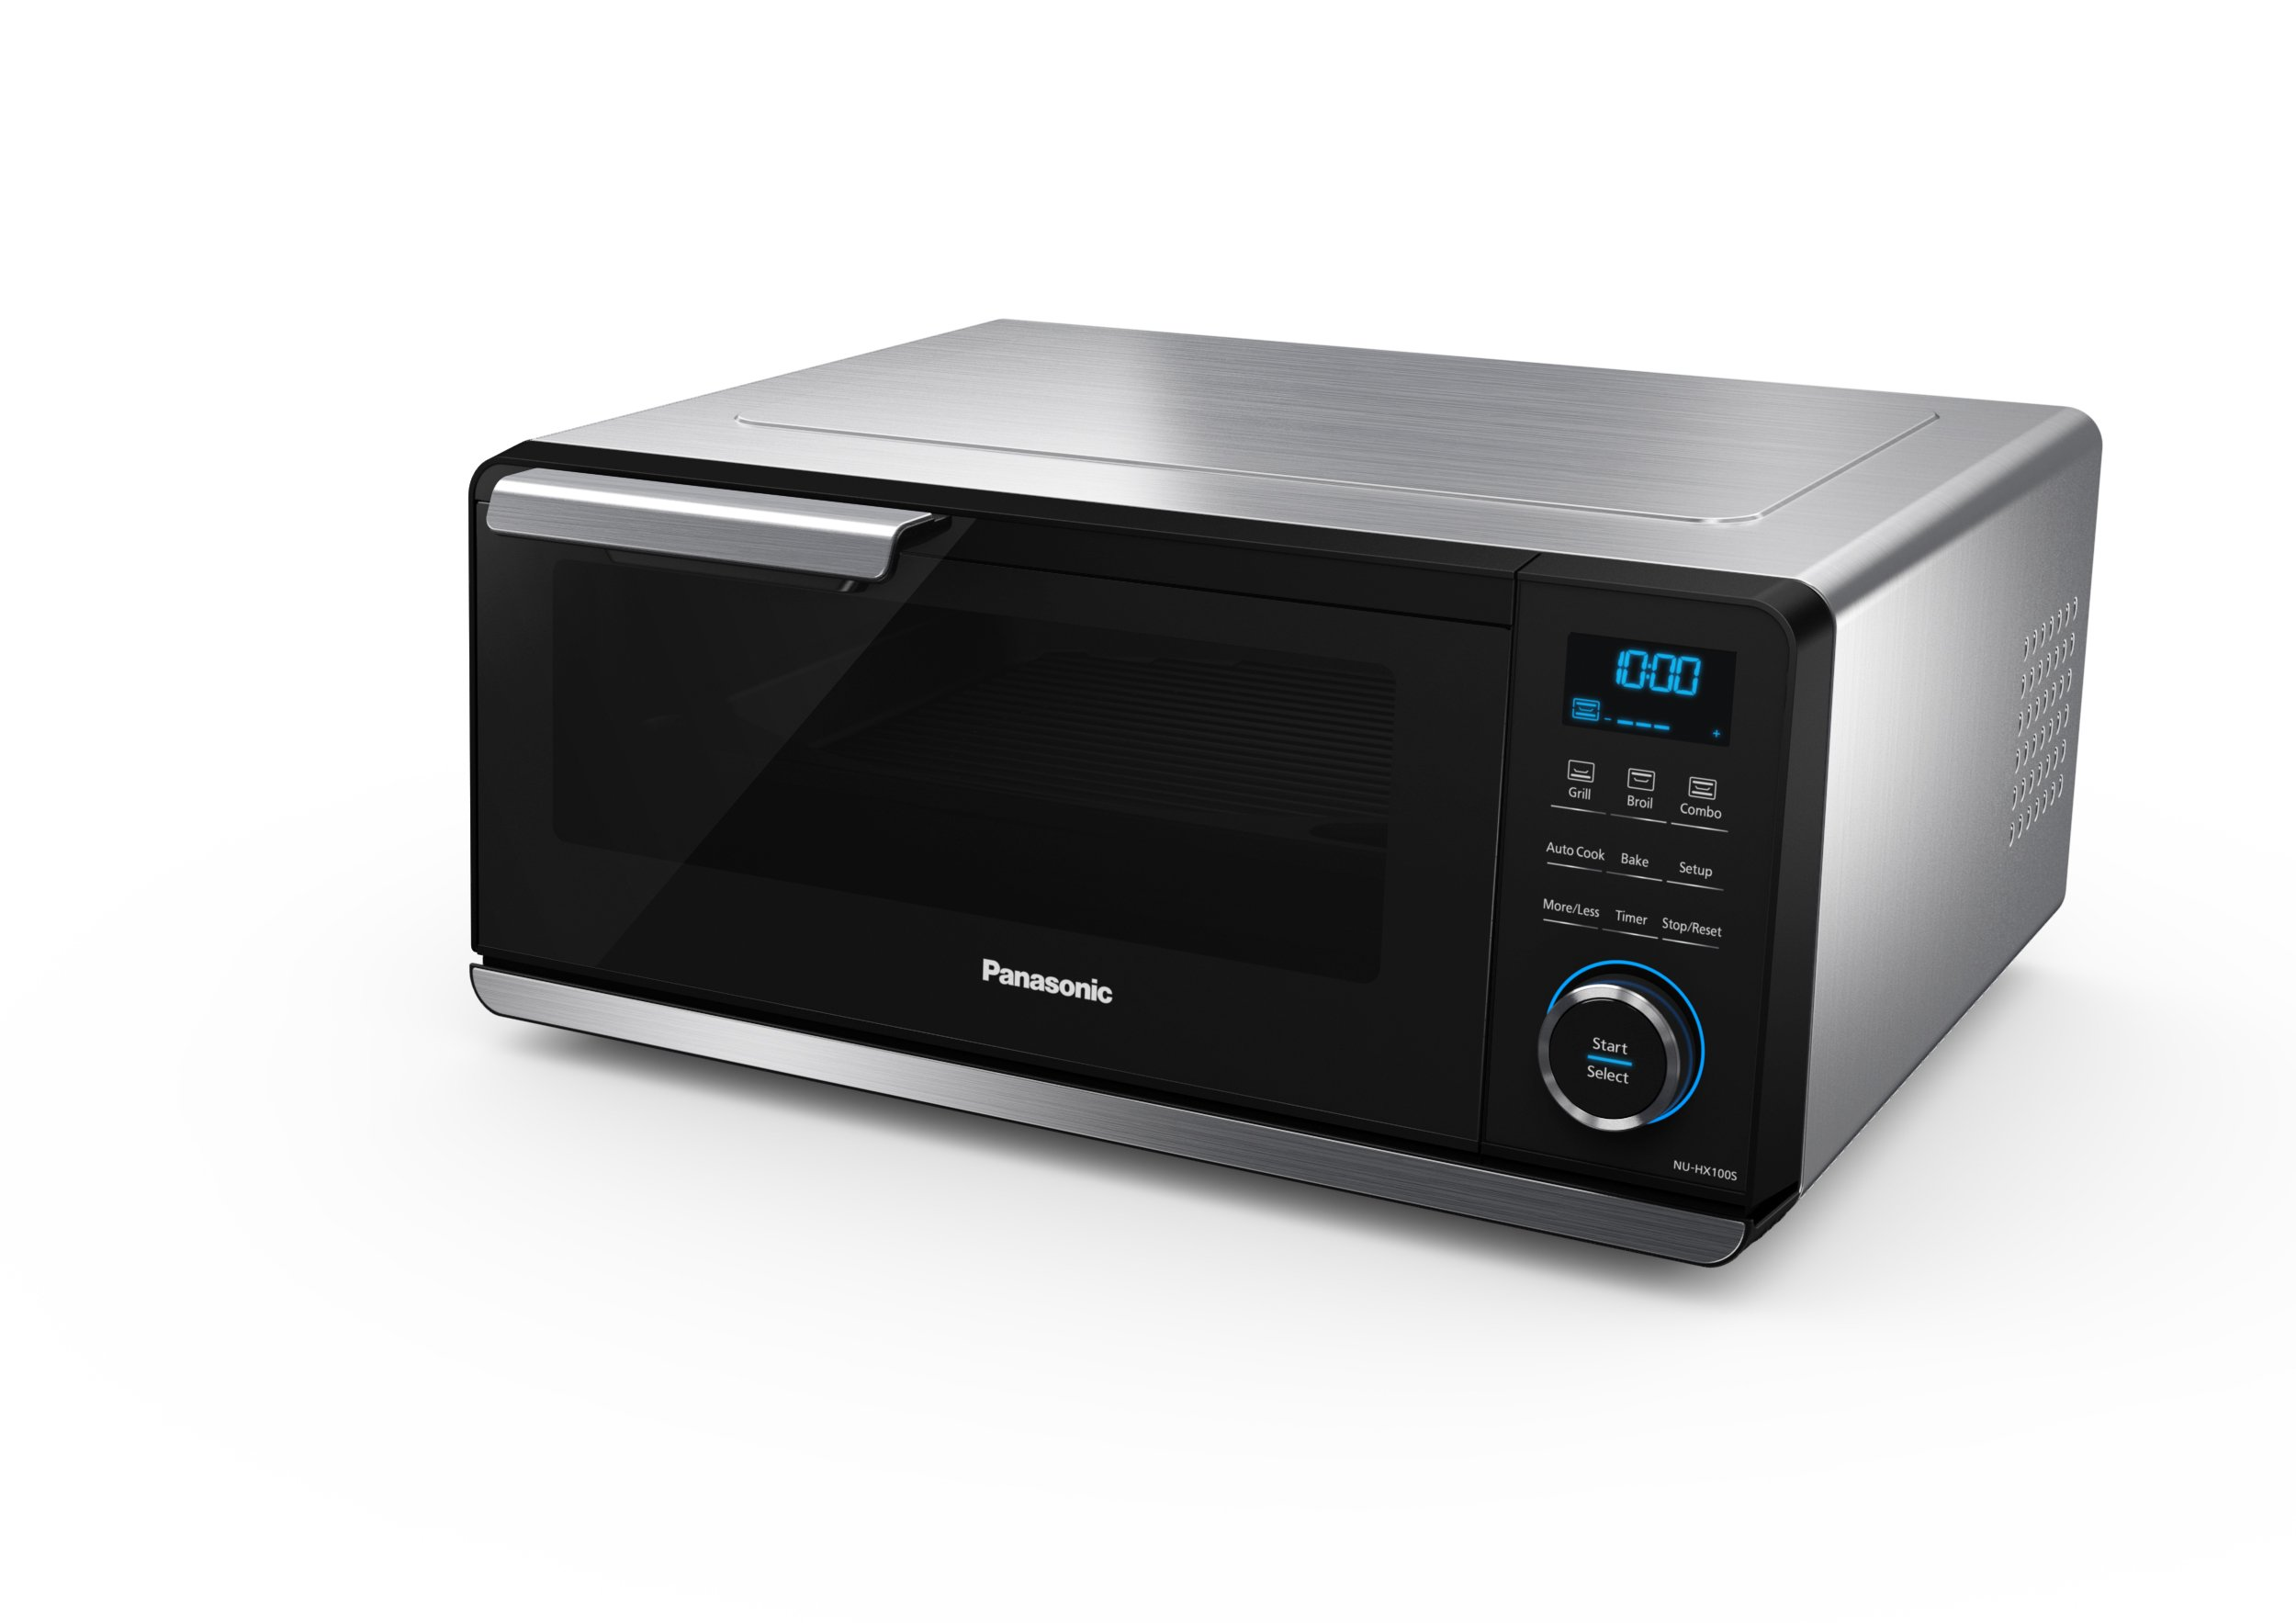 Panasonic NU-HX100S Countertop Oven & Indoor Grill with Induction Technology (IH) and Infrared Heat, Stainless Steel